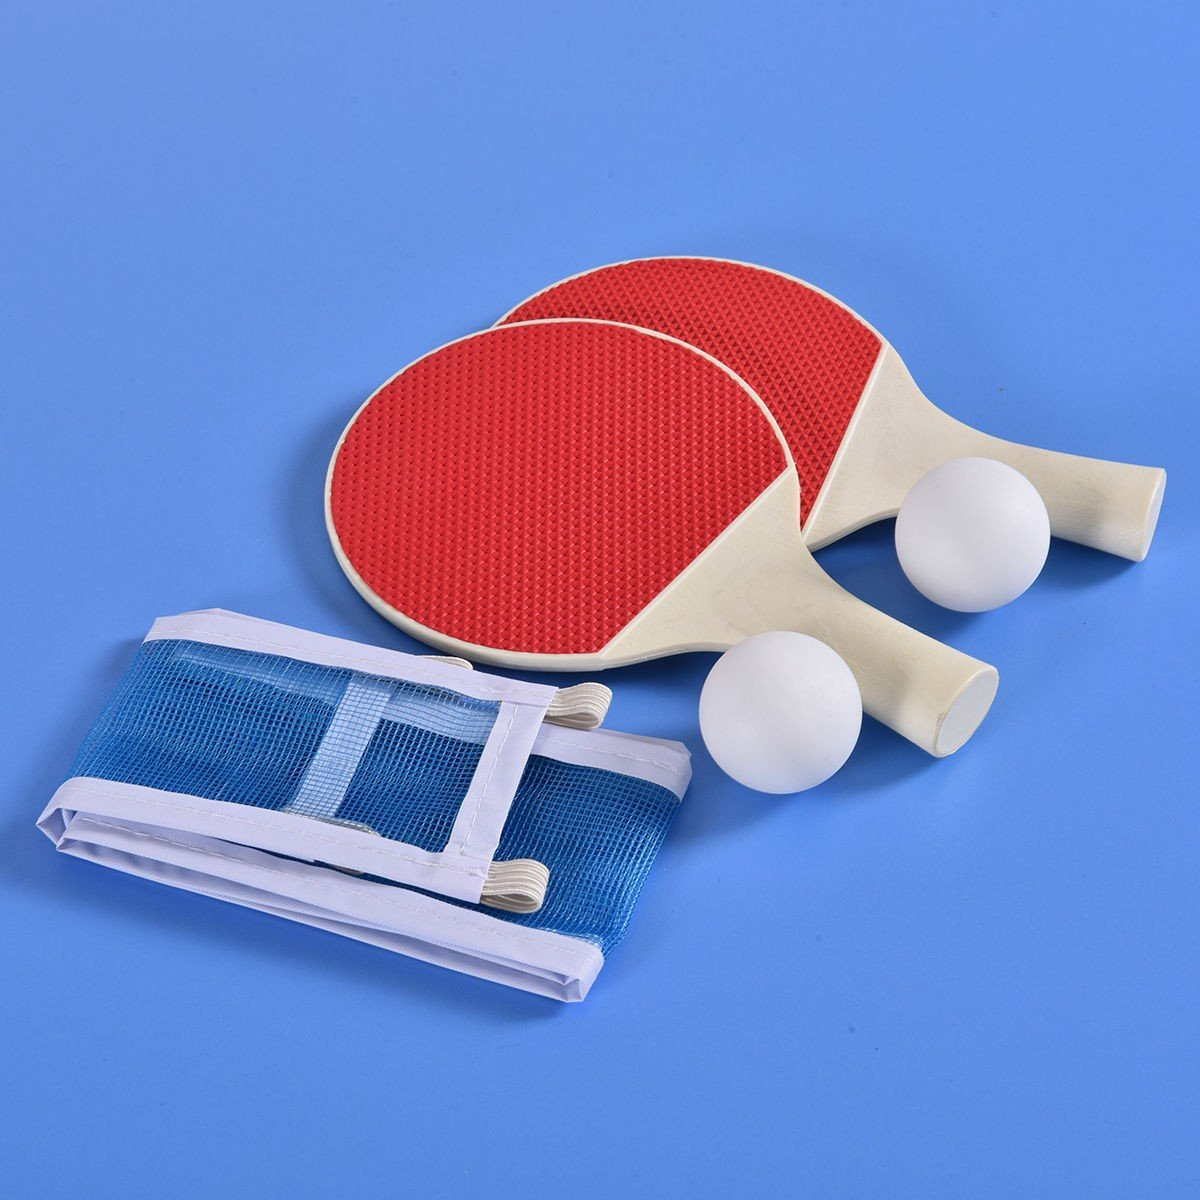 60u201d Portable Table Tennis Ping Pong Folding Table W/Accessories Indoor Game